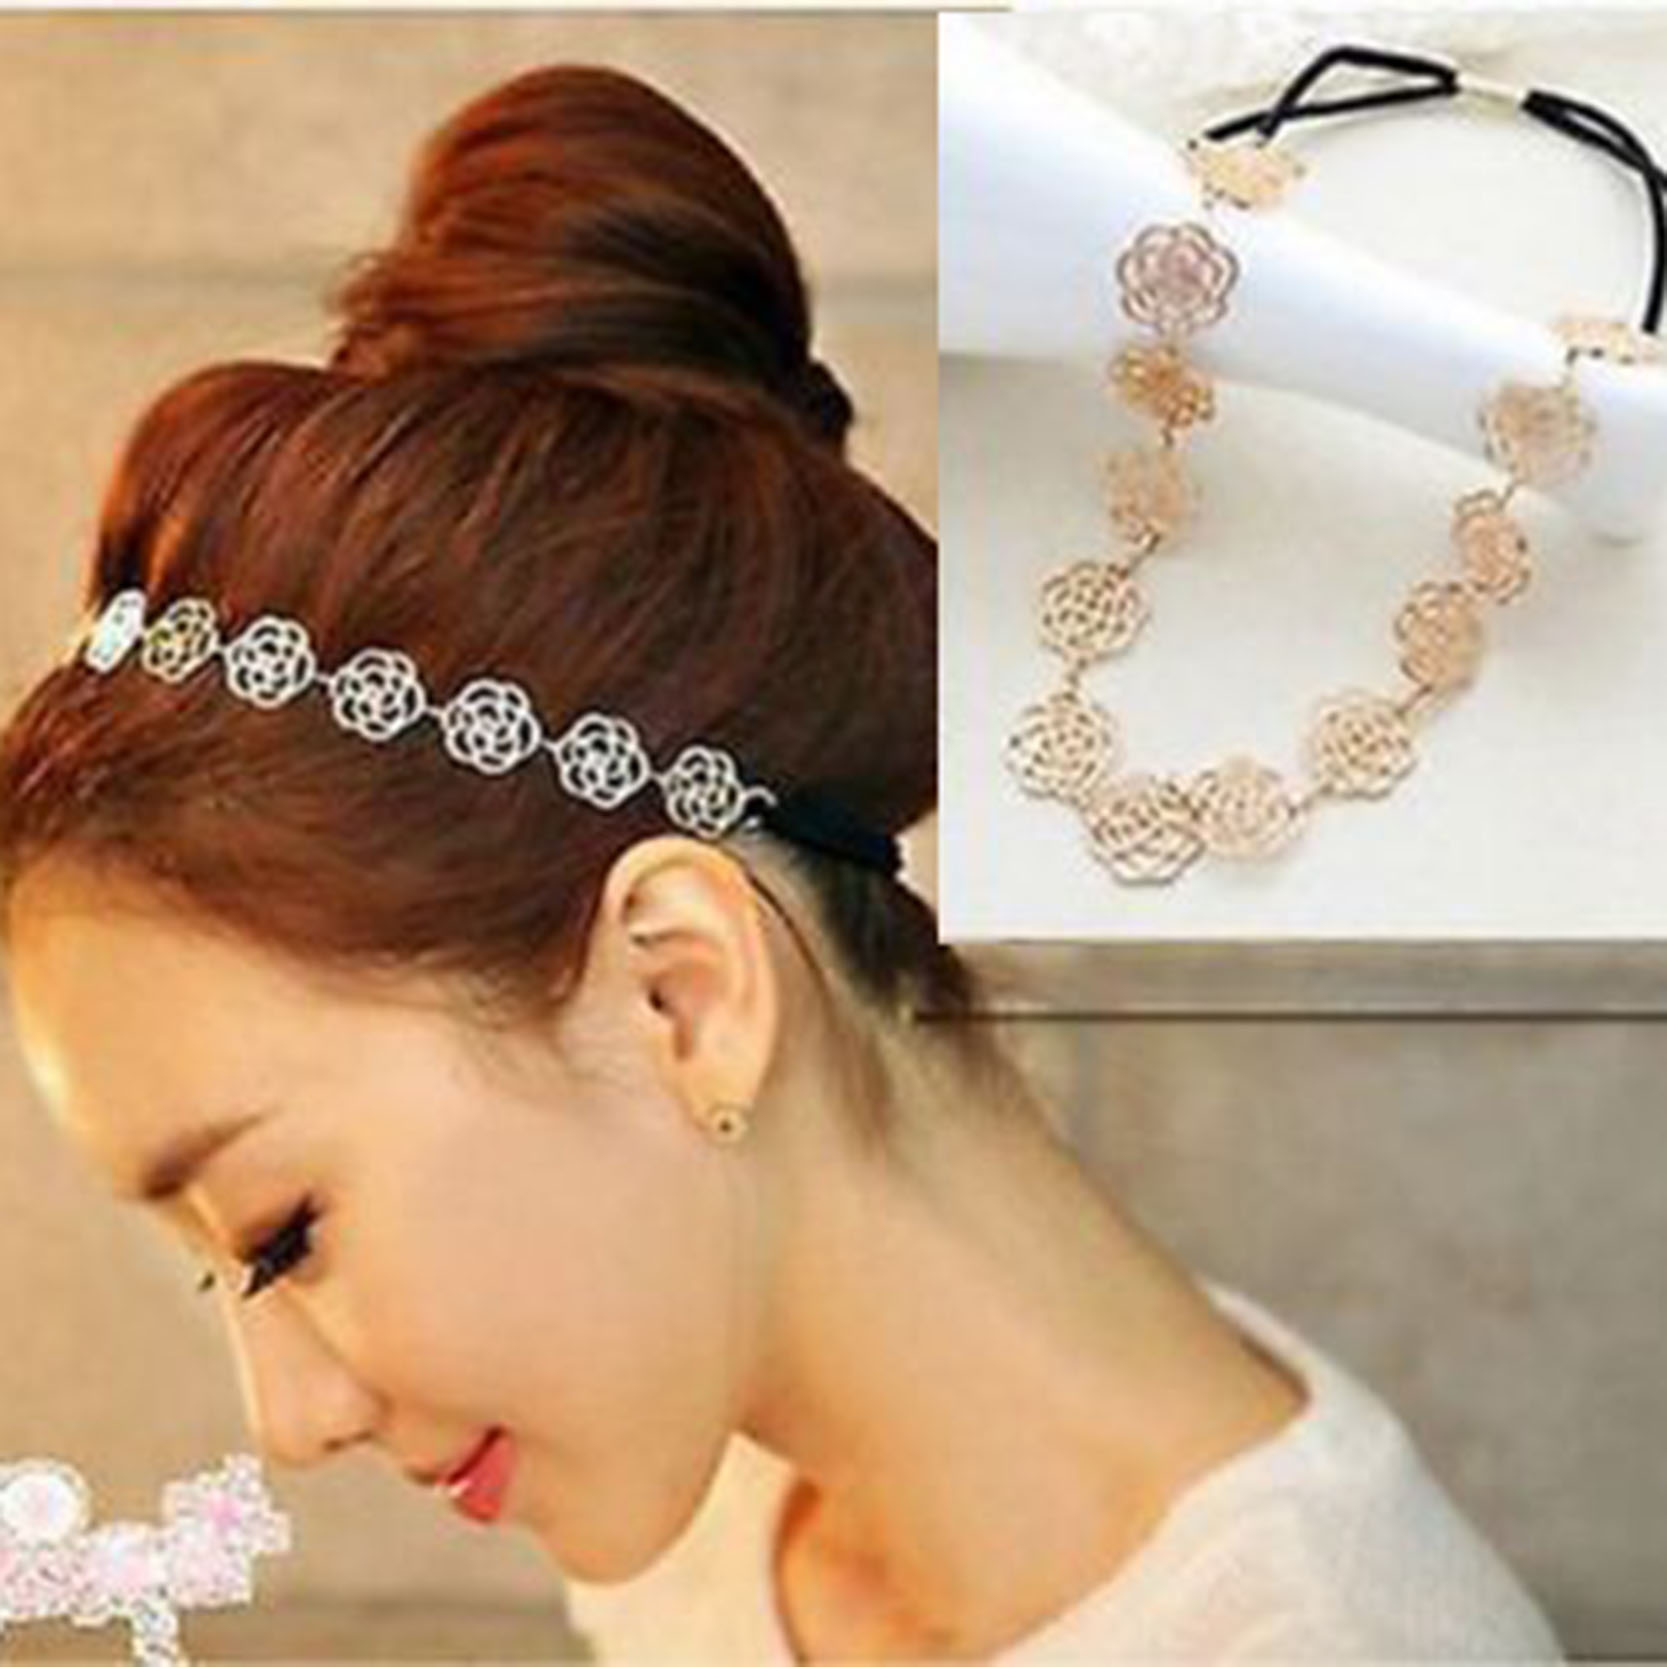 Fashion Women Rose Flower Design Hair Bands Headband Rubber Band Adjustable Hot Sale Hair Accessories(China (Mainland))